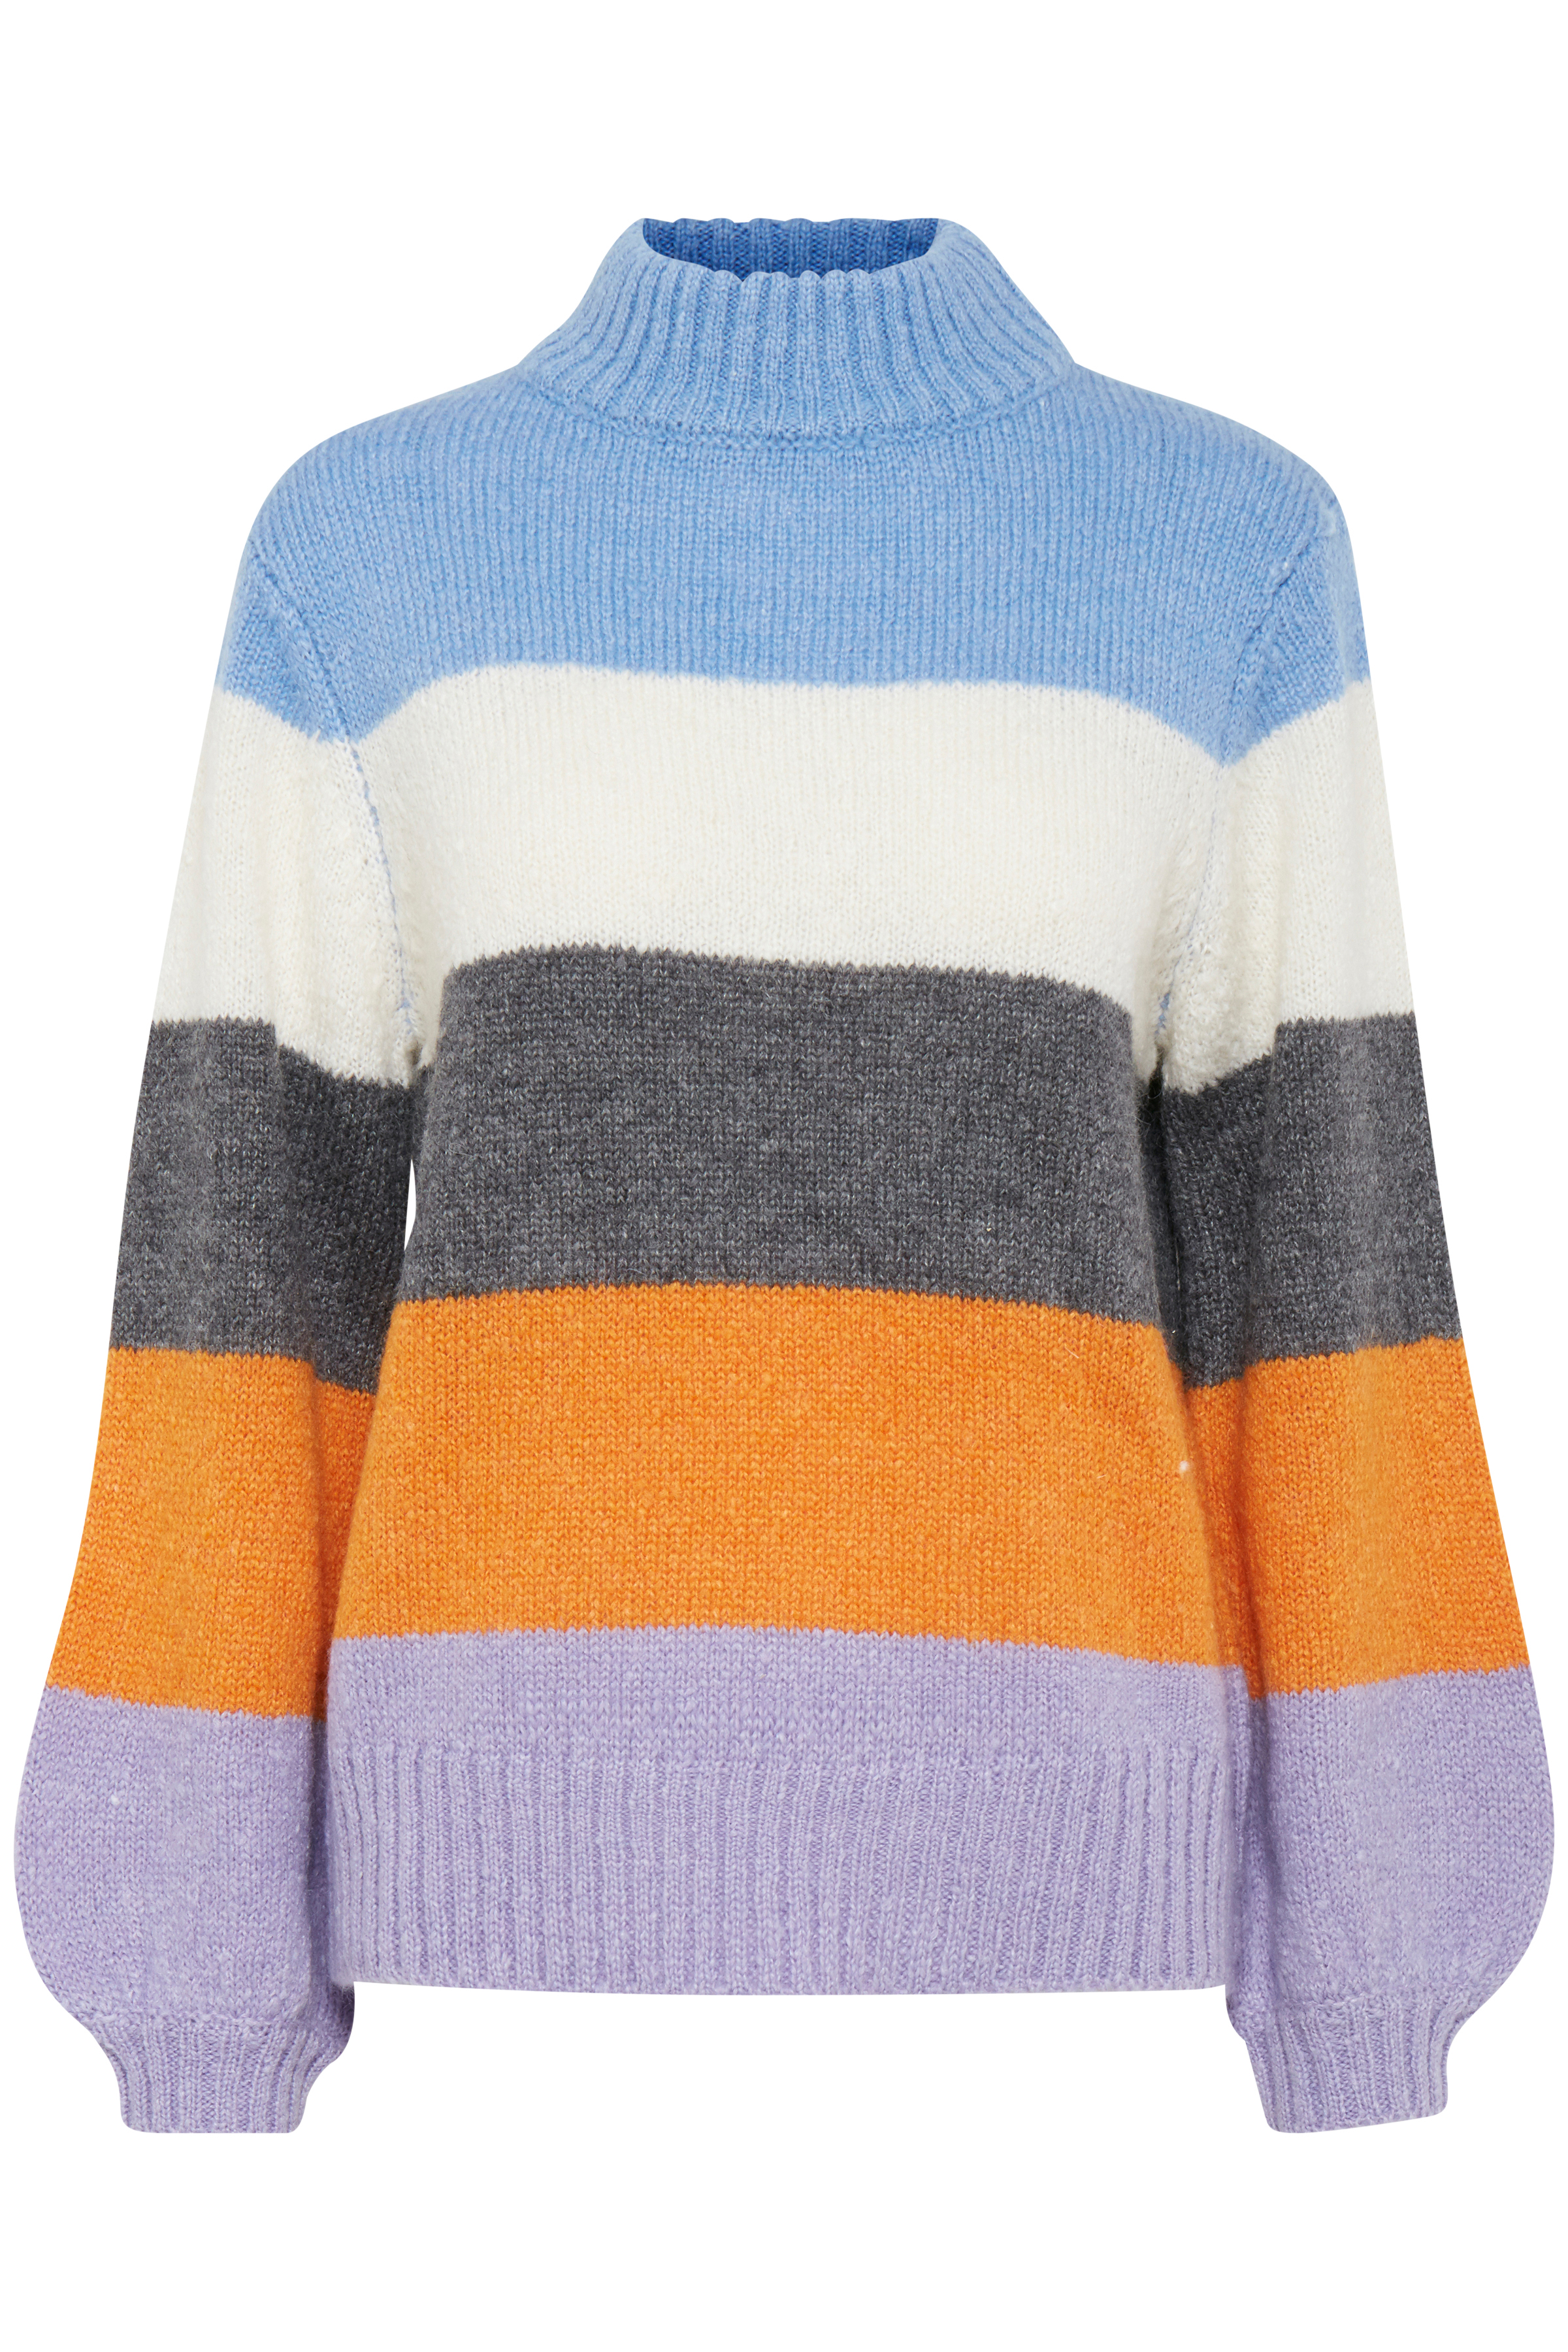 Cornflower Blue combi Knitted pullover from b.young – Buy Cornflower Blue combi Knitted pullover from size XS-XXL here